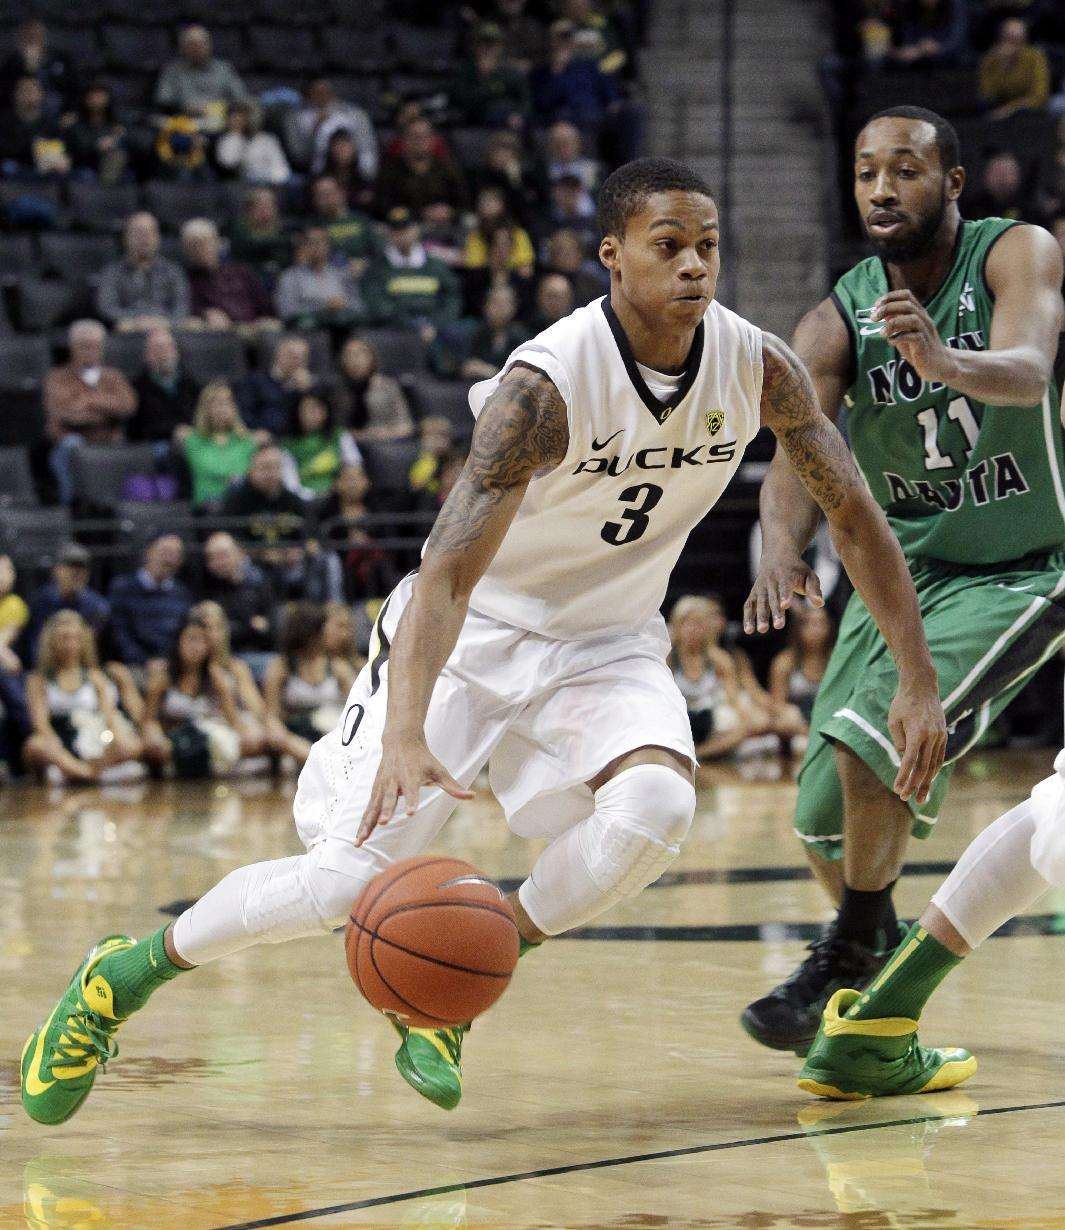 Oregon guard Joseph Young, left, drives past North Dakota guard Jamal Webb during the first half of an NCAA college basketball game in Eugene, Ore., Saturday, Nov. 30, 2013